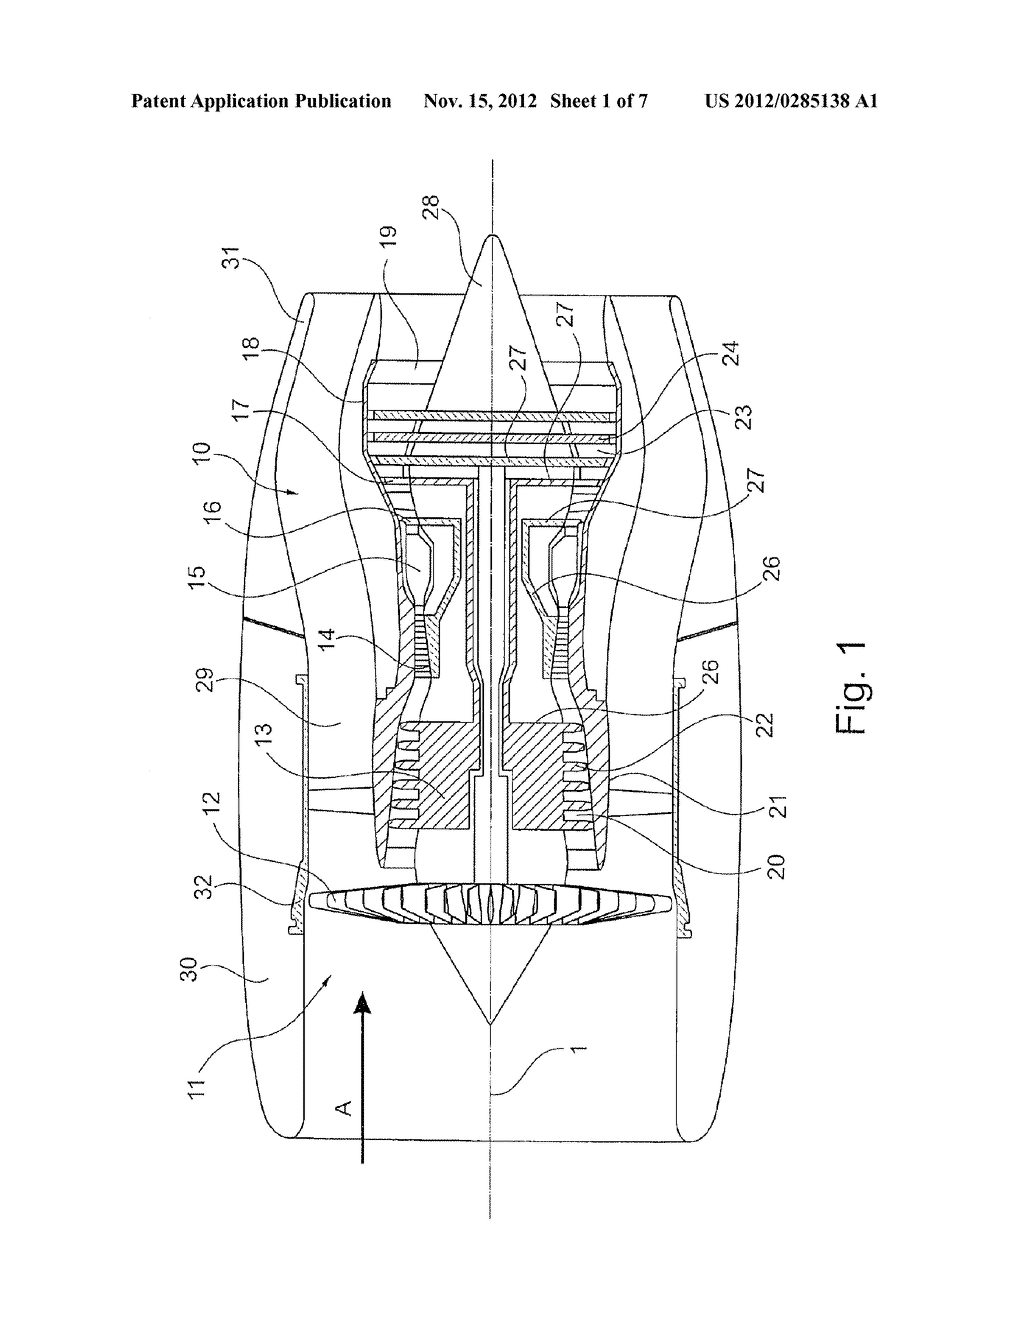 Airplane Cowling Diagram Data Wiring Blog Components Of An Aircraft Gas Turbine Engine With Oil Cooler In The Wing